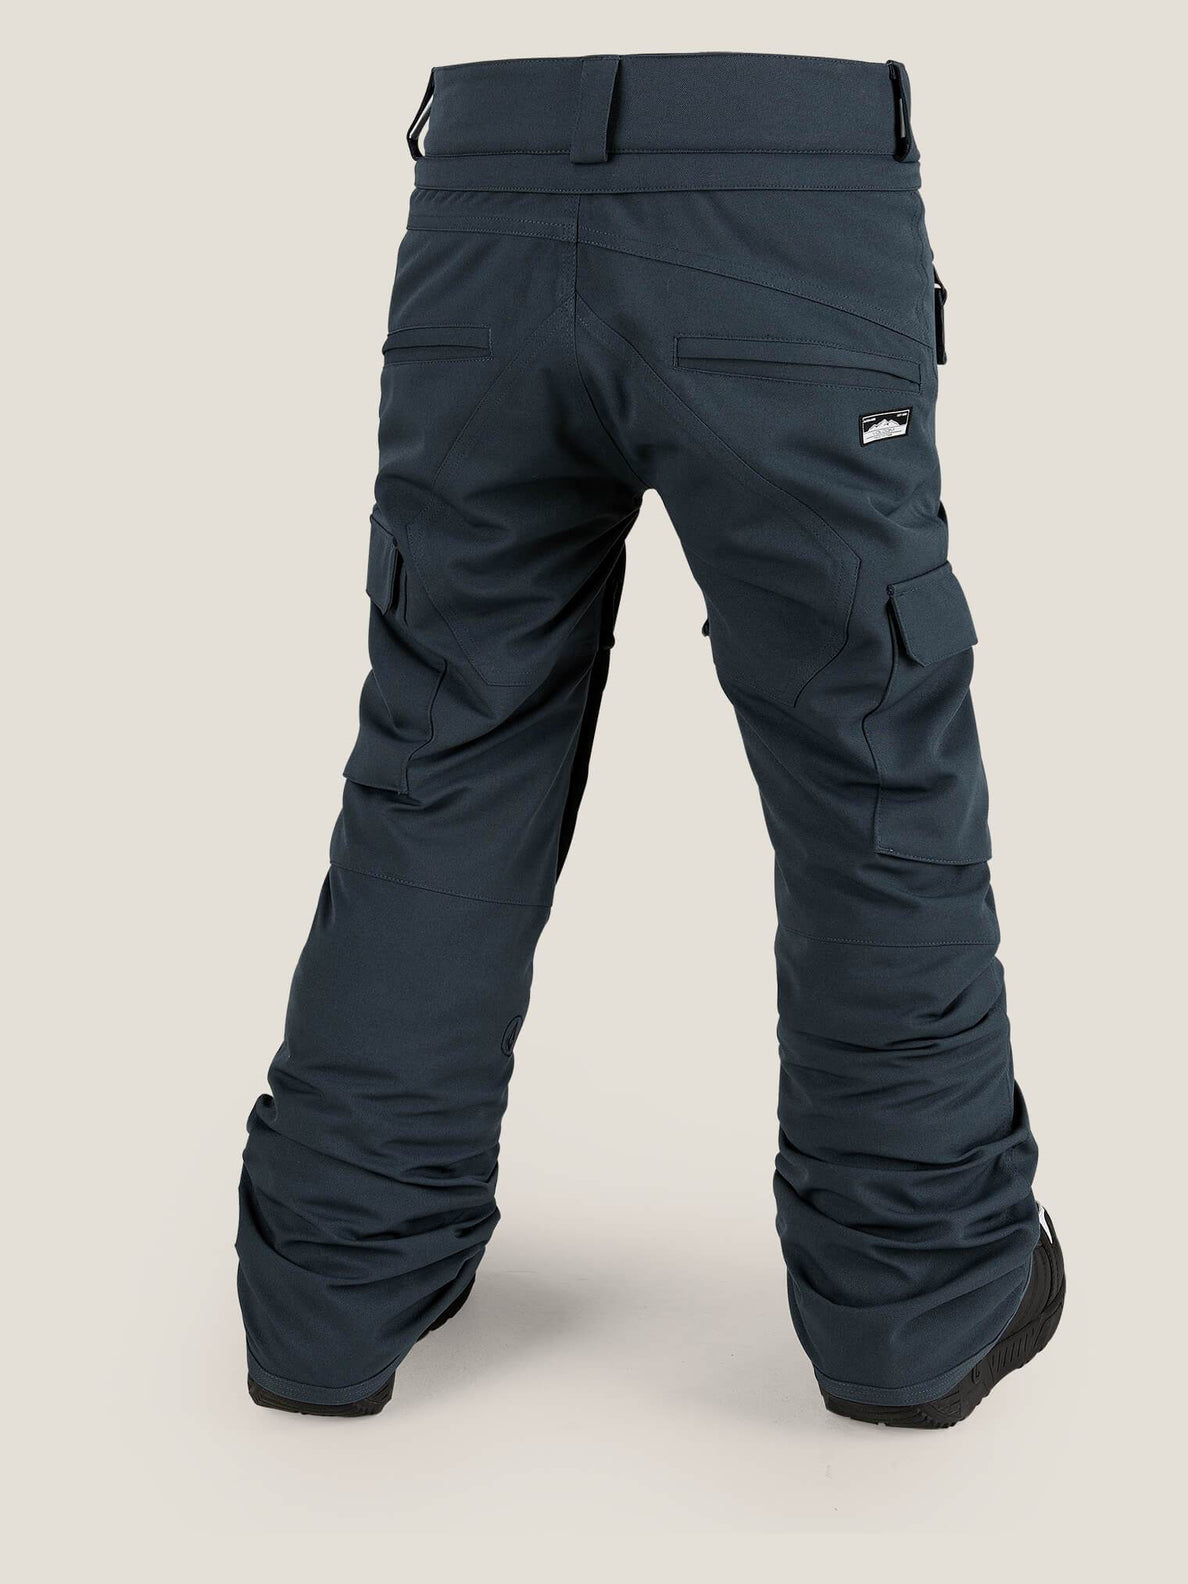 Cargo Insulated Pant In Vintage Navy, Back View